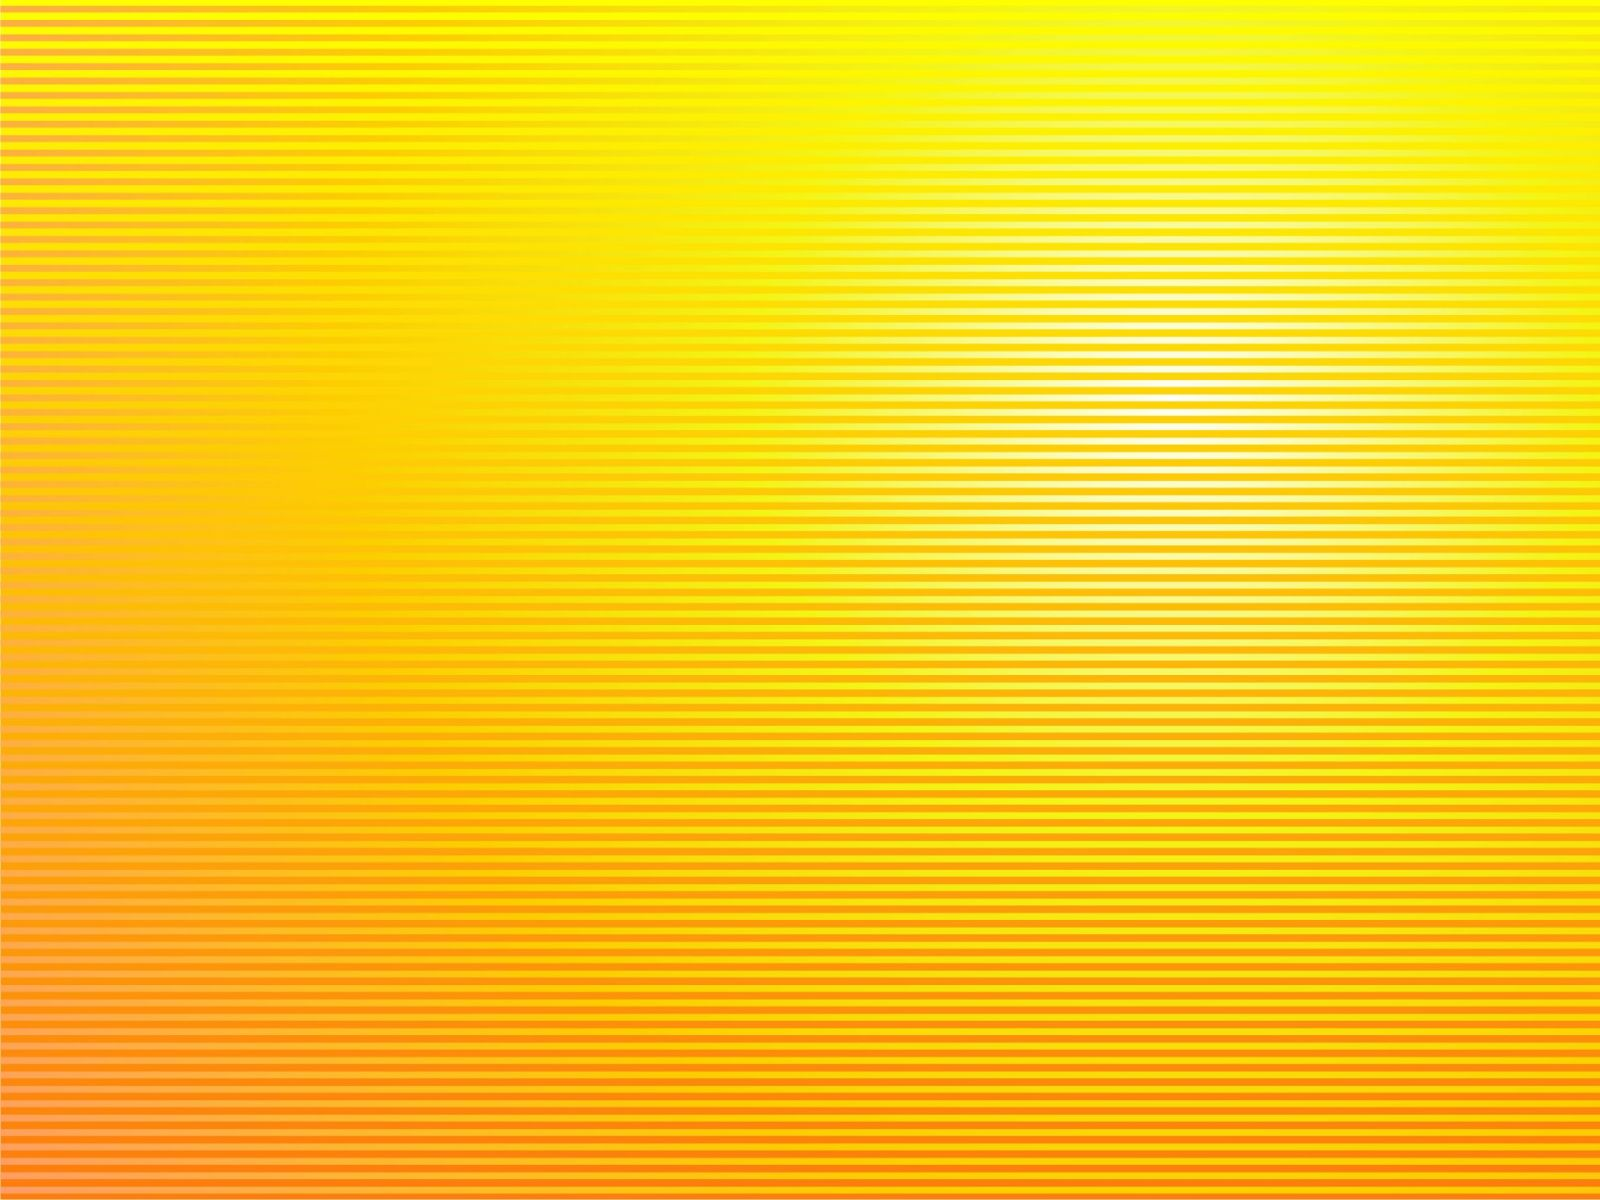 Free Yellow Background